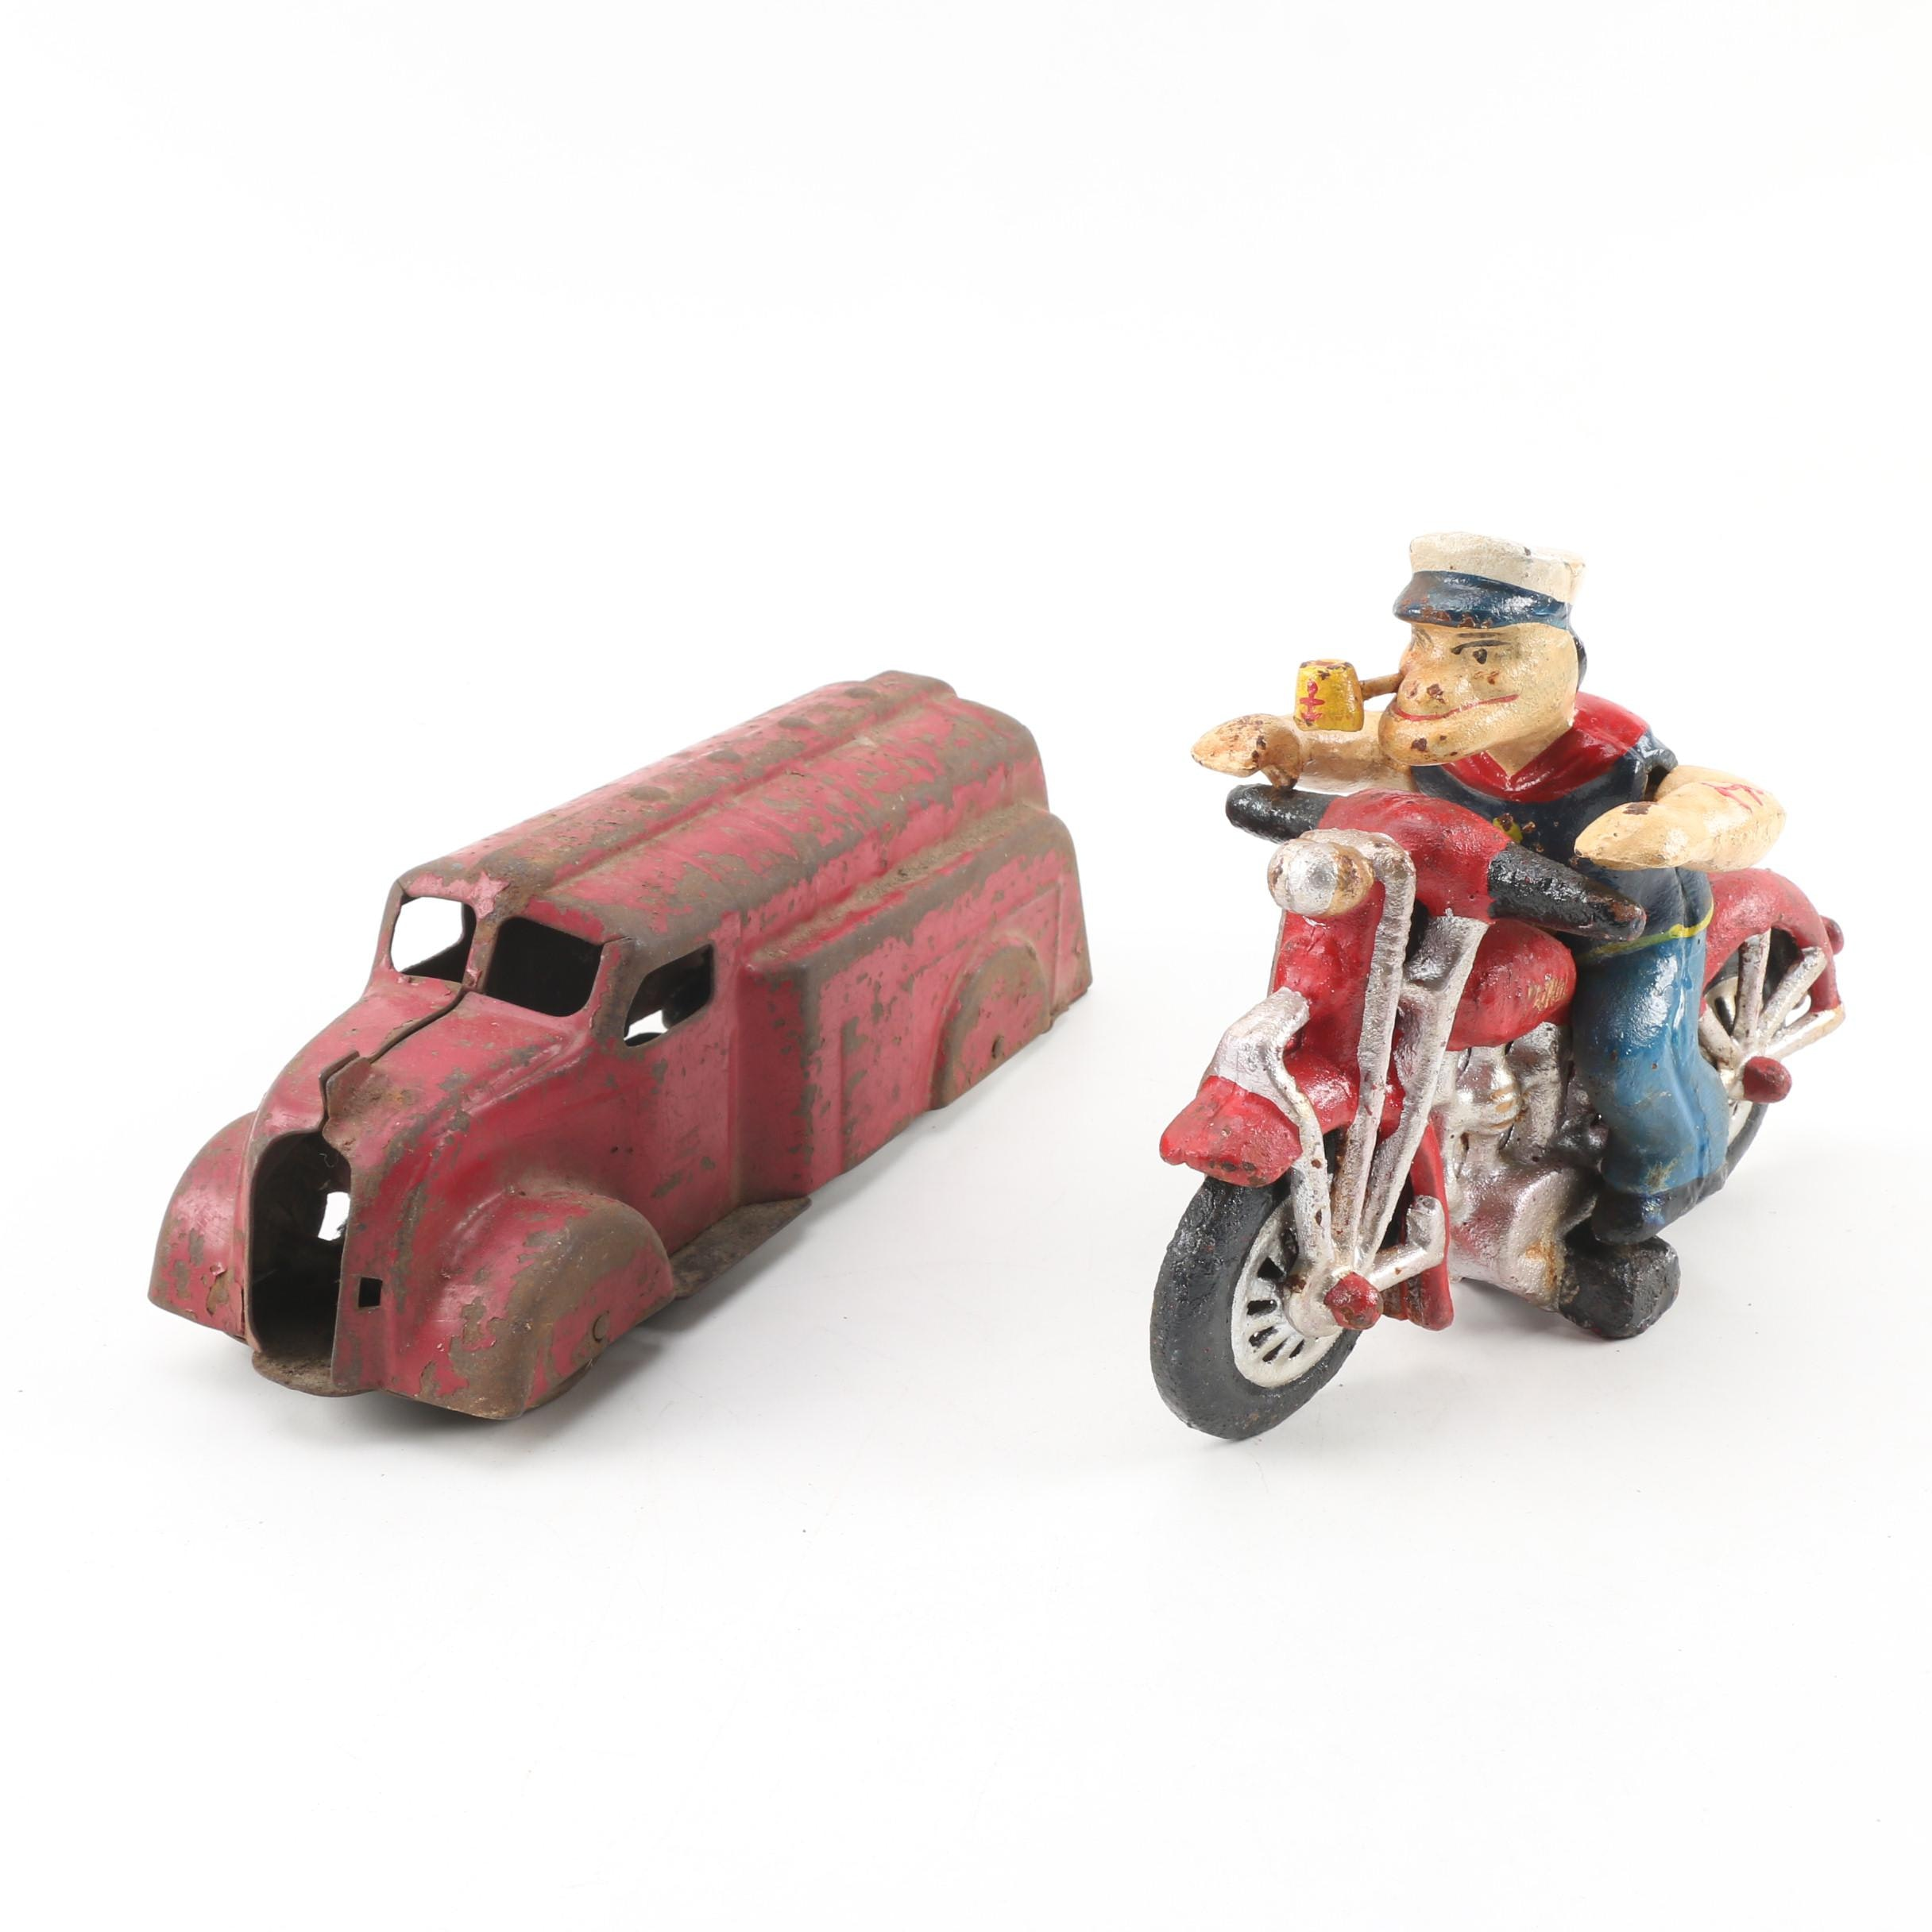 "Hubley Cast Iron ""Popeye on Patrol"" Figurine and Metal Toy Truck, circa 1930"